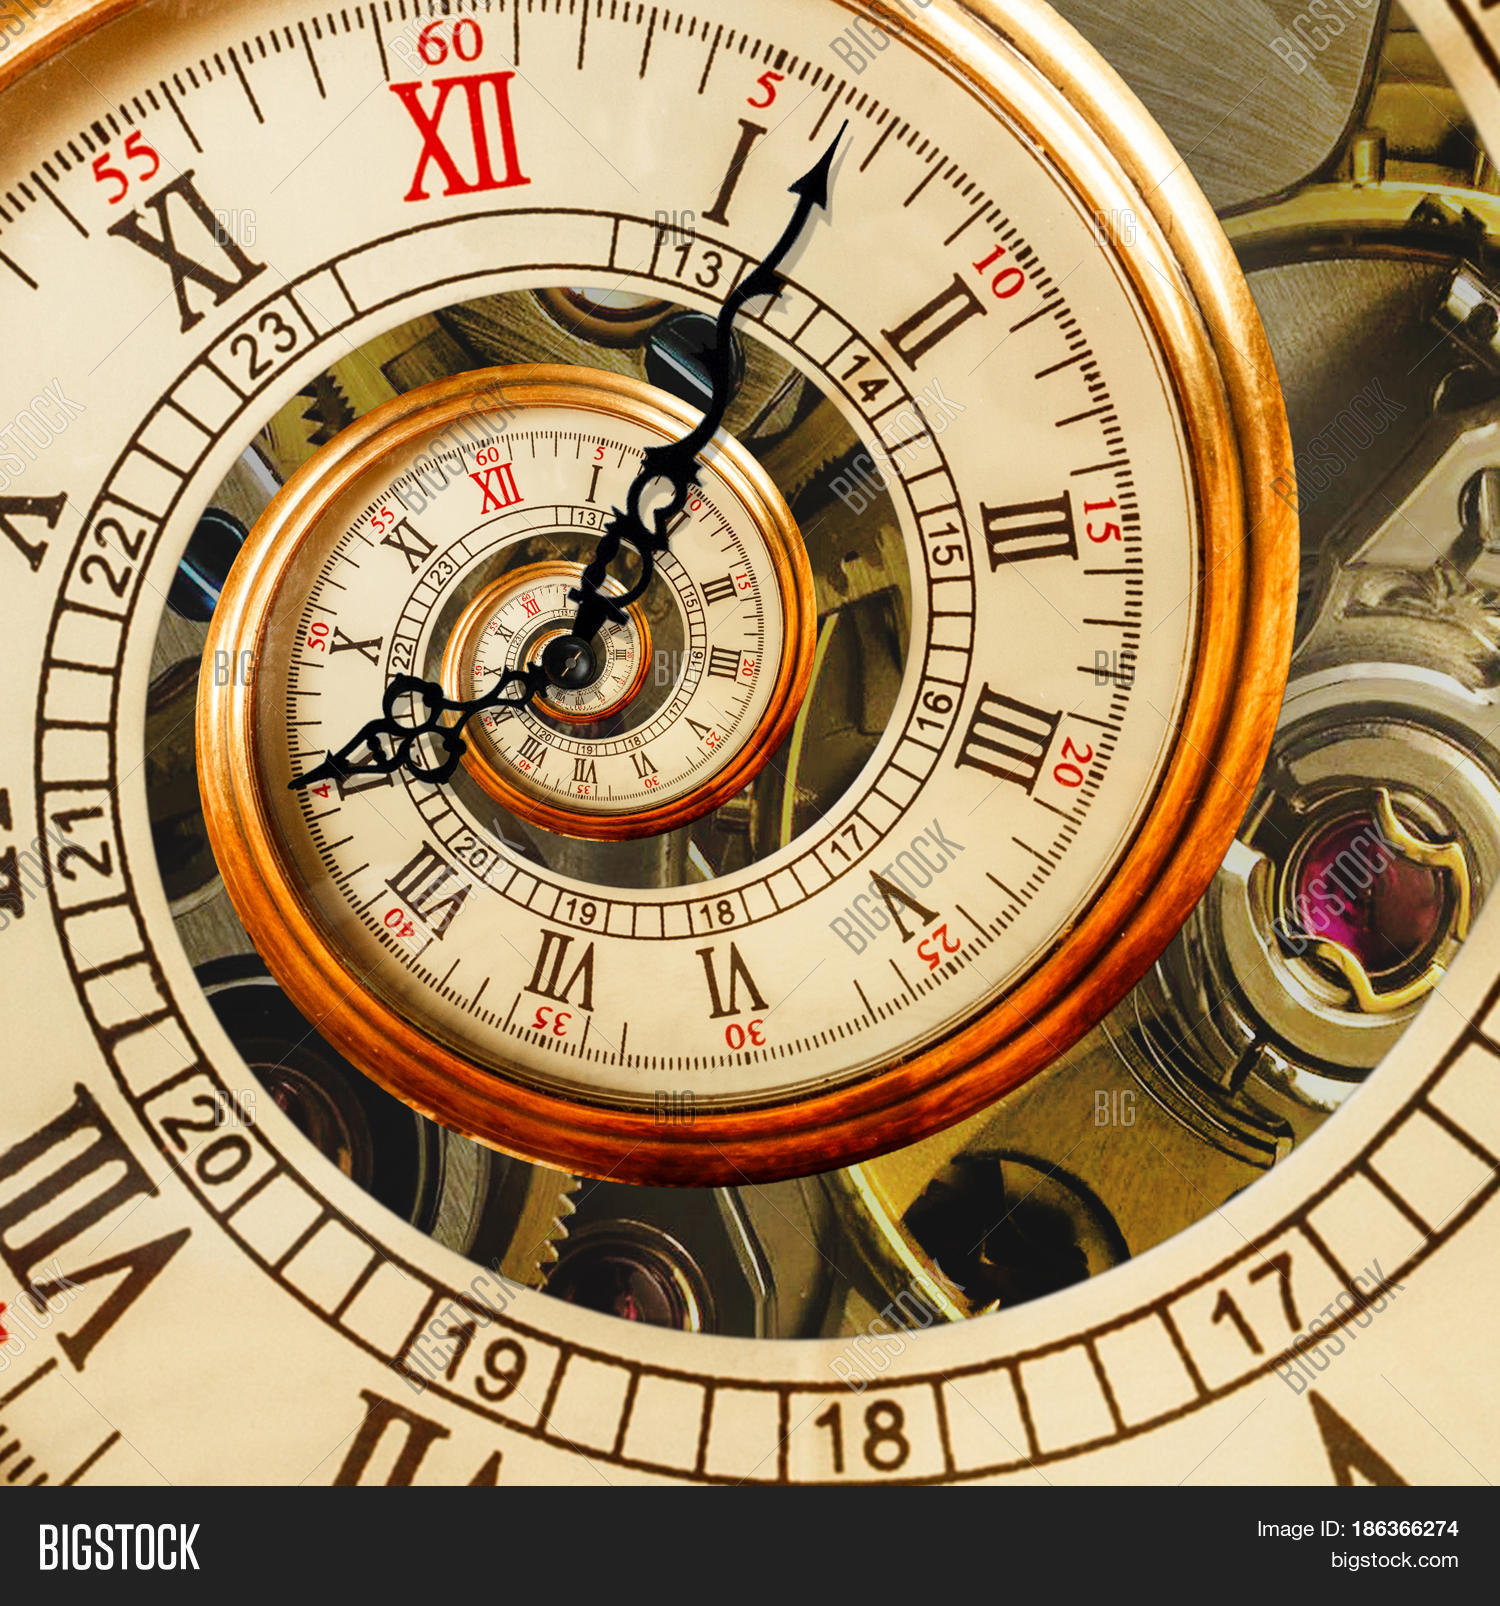 Unusual Clocks Antique Old Clock Abstract Fractal Image Amp Photo Bigstock